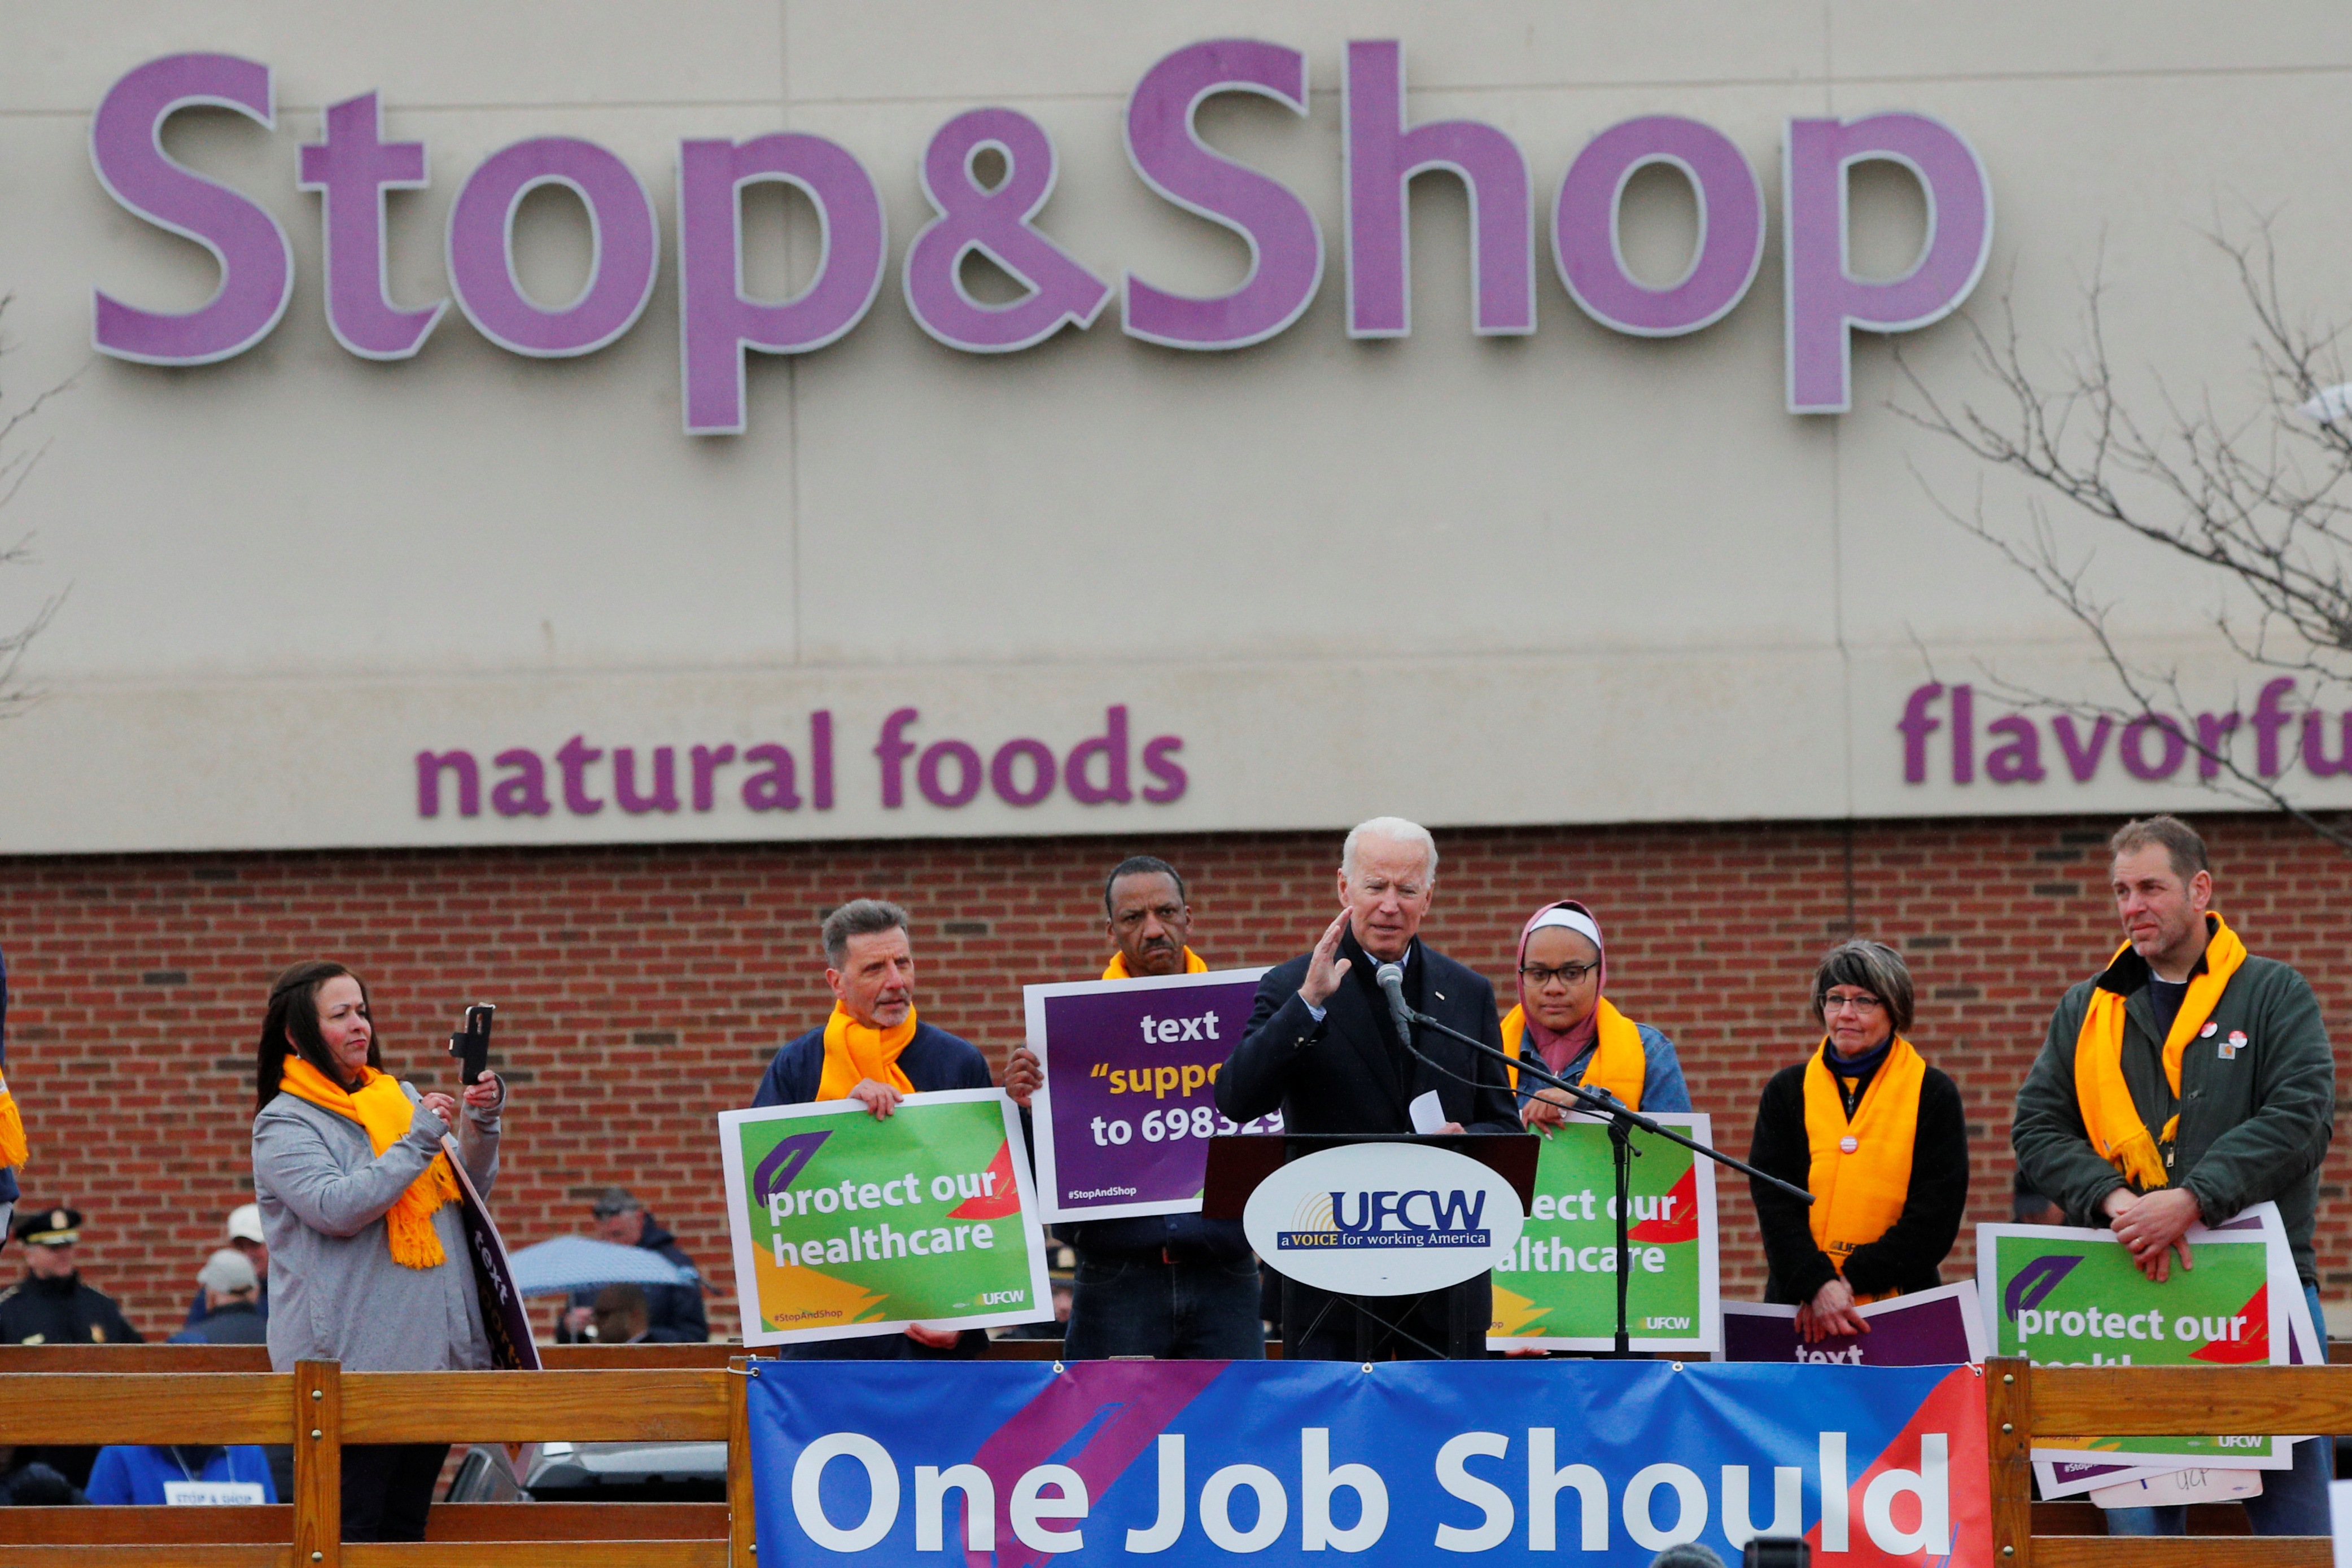 Former U.S. Vice President Joe Biden, a potential 2020 Democratic presidential candidate, speaks at a rally with striking Stop & Shop workers in Boston, Massachusetts, U.S., April 18, 2019. REUTERS/Brian Snyder